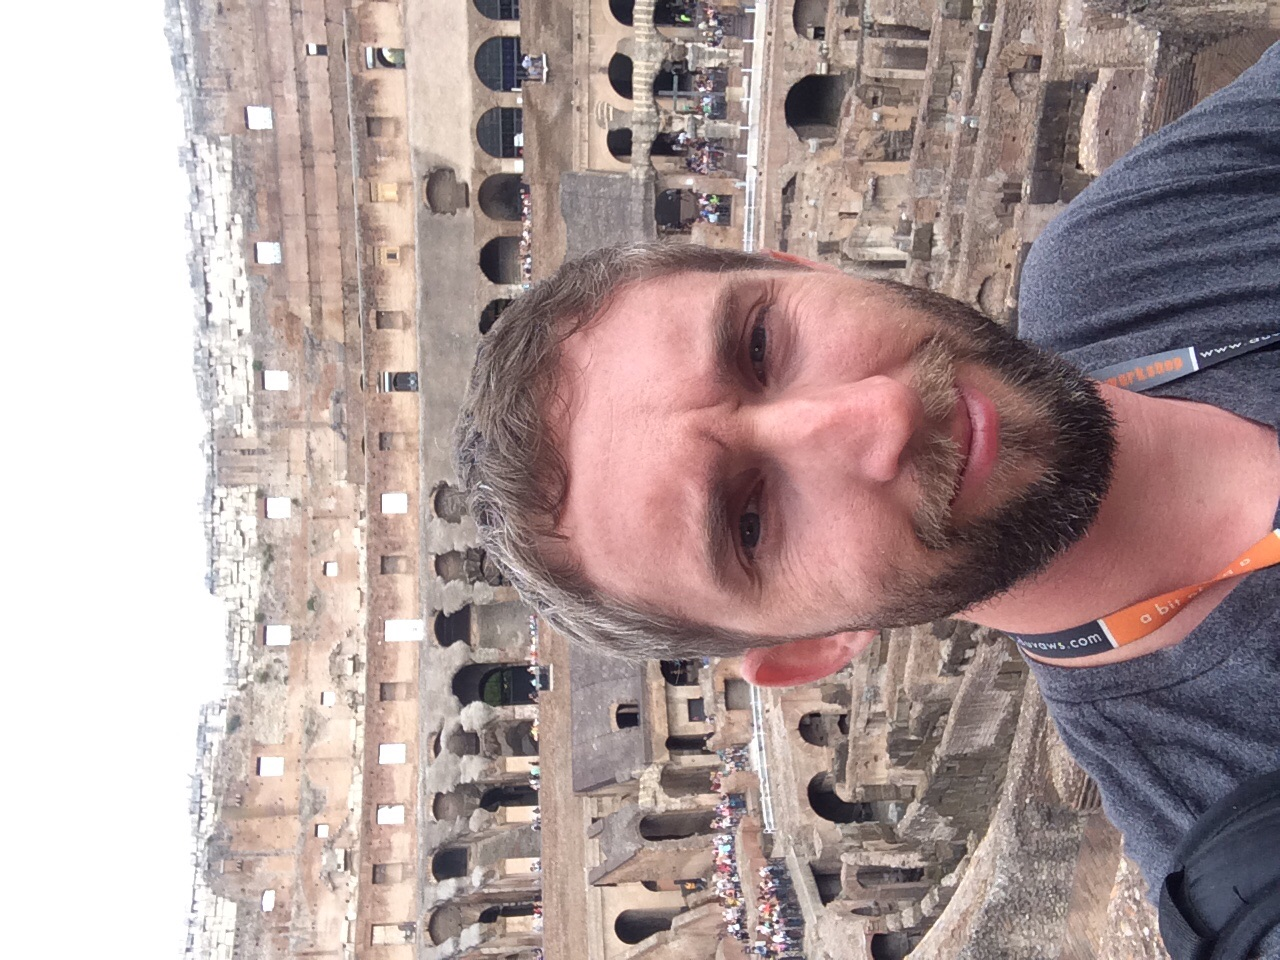 Colosseo, Holiday Beard.